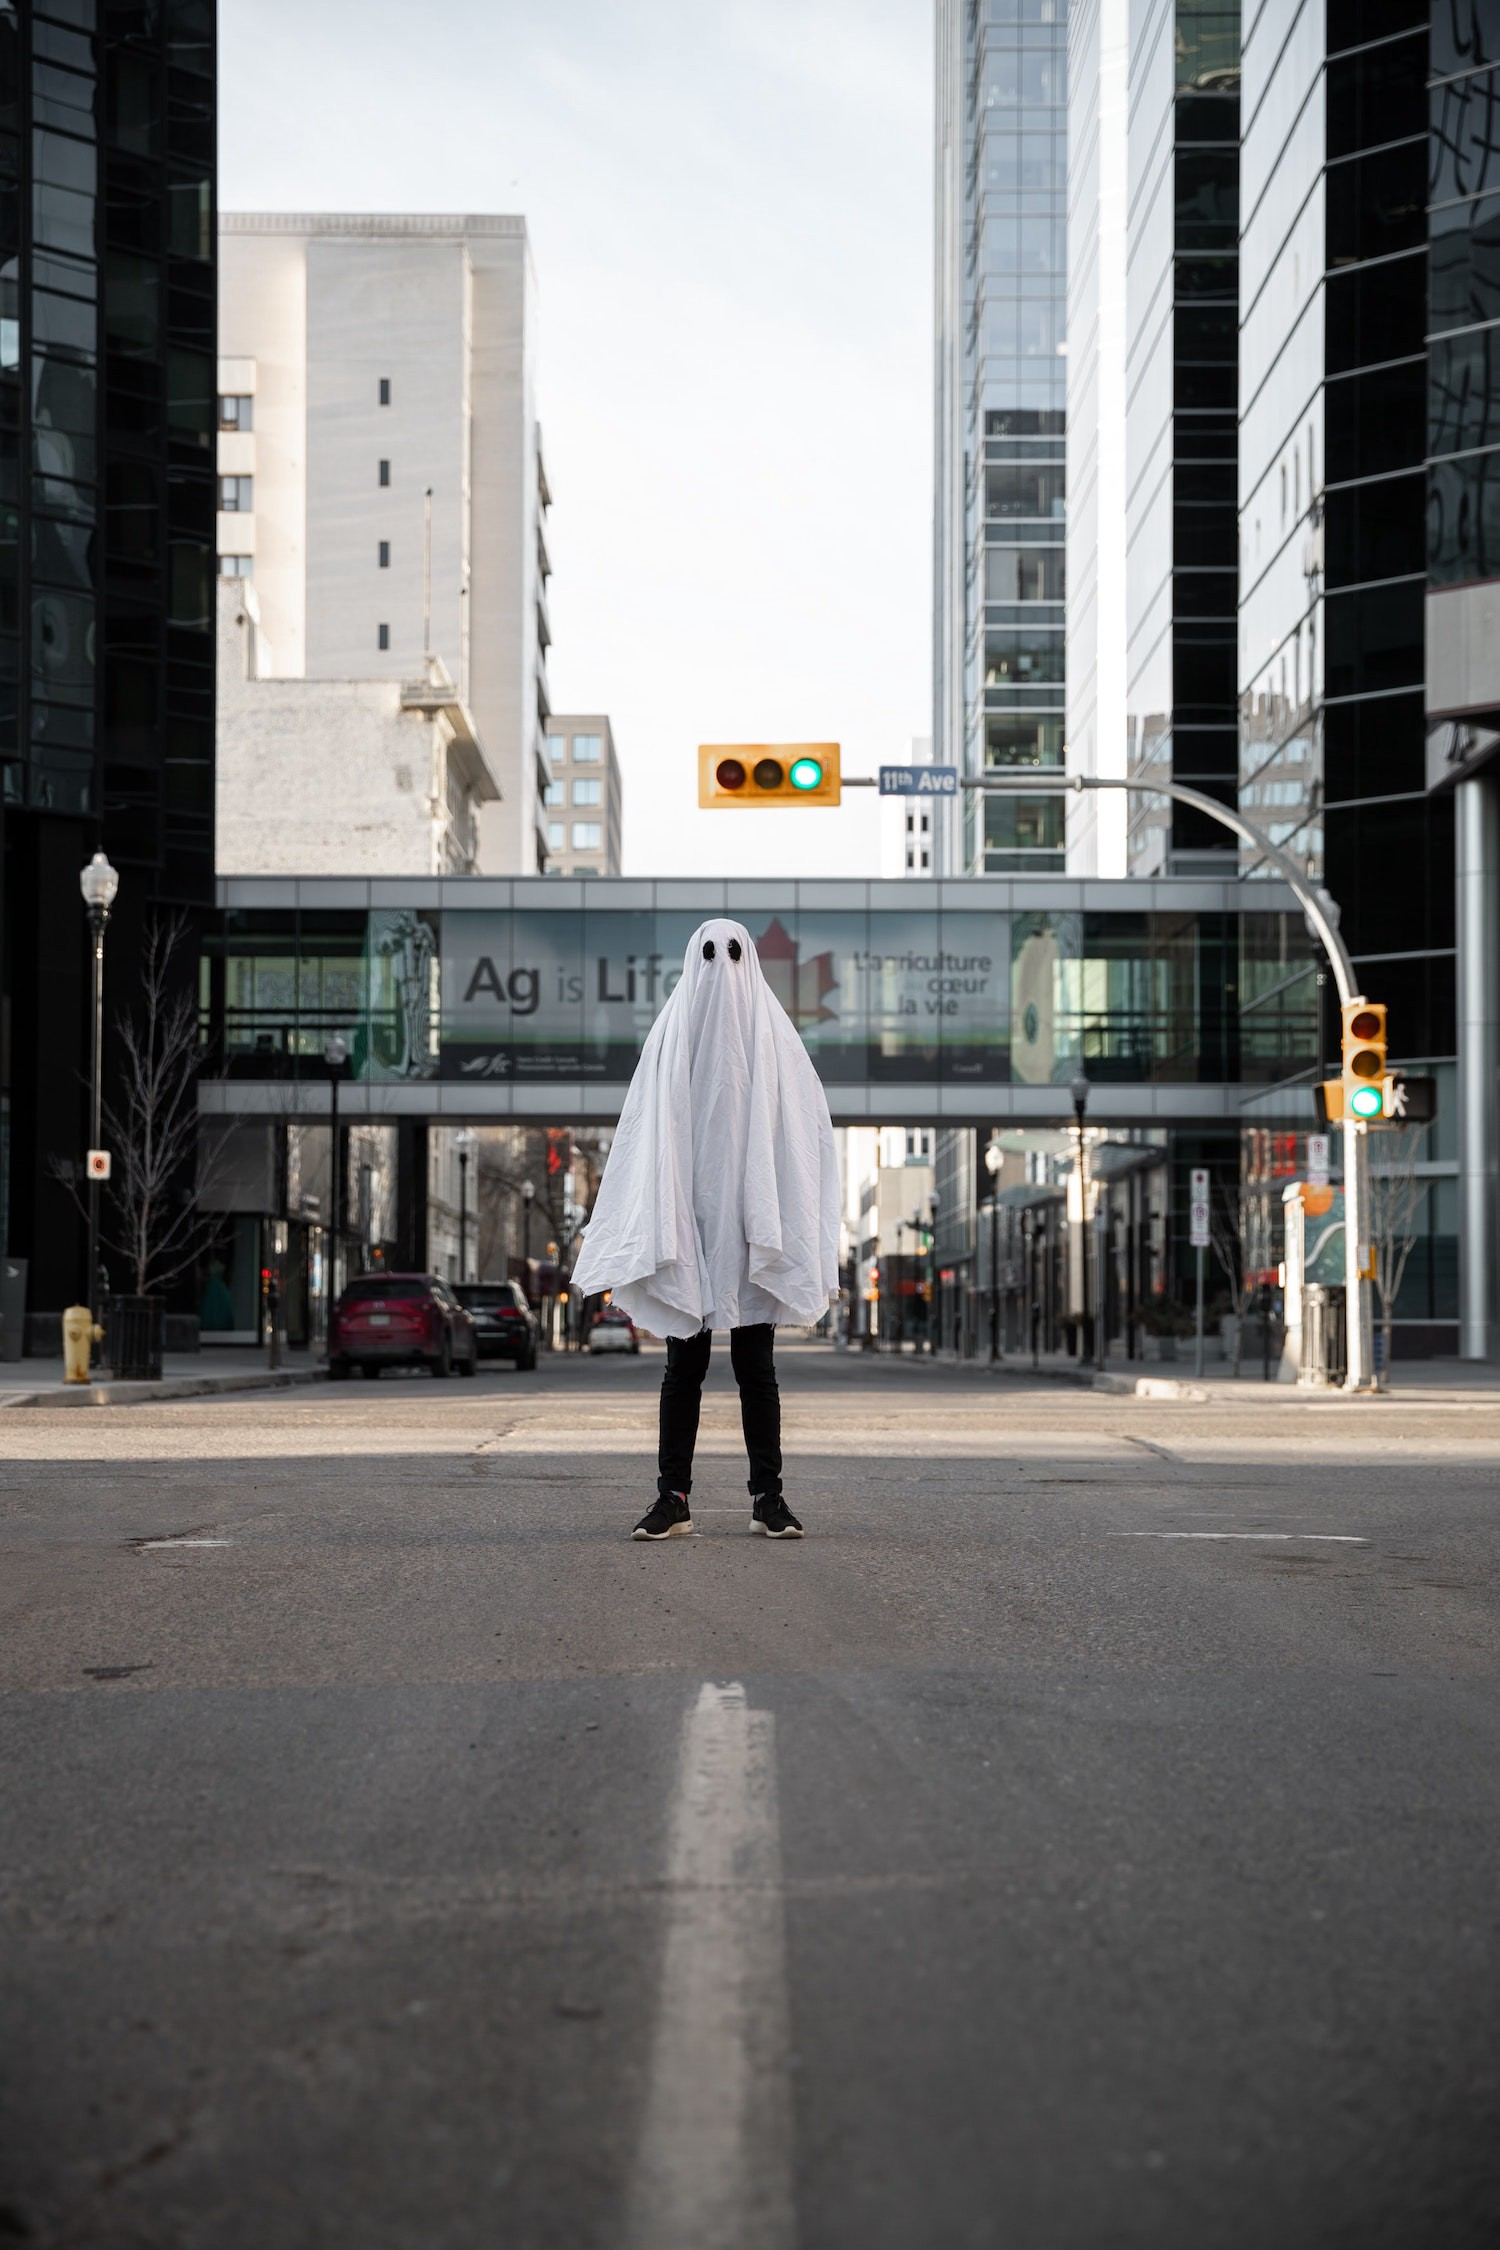 Man standing in road in ghost costume.